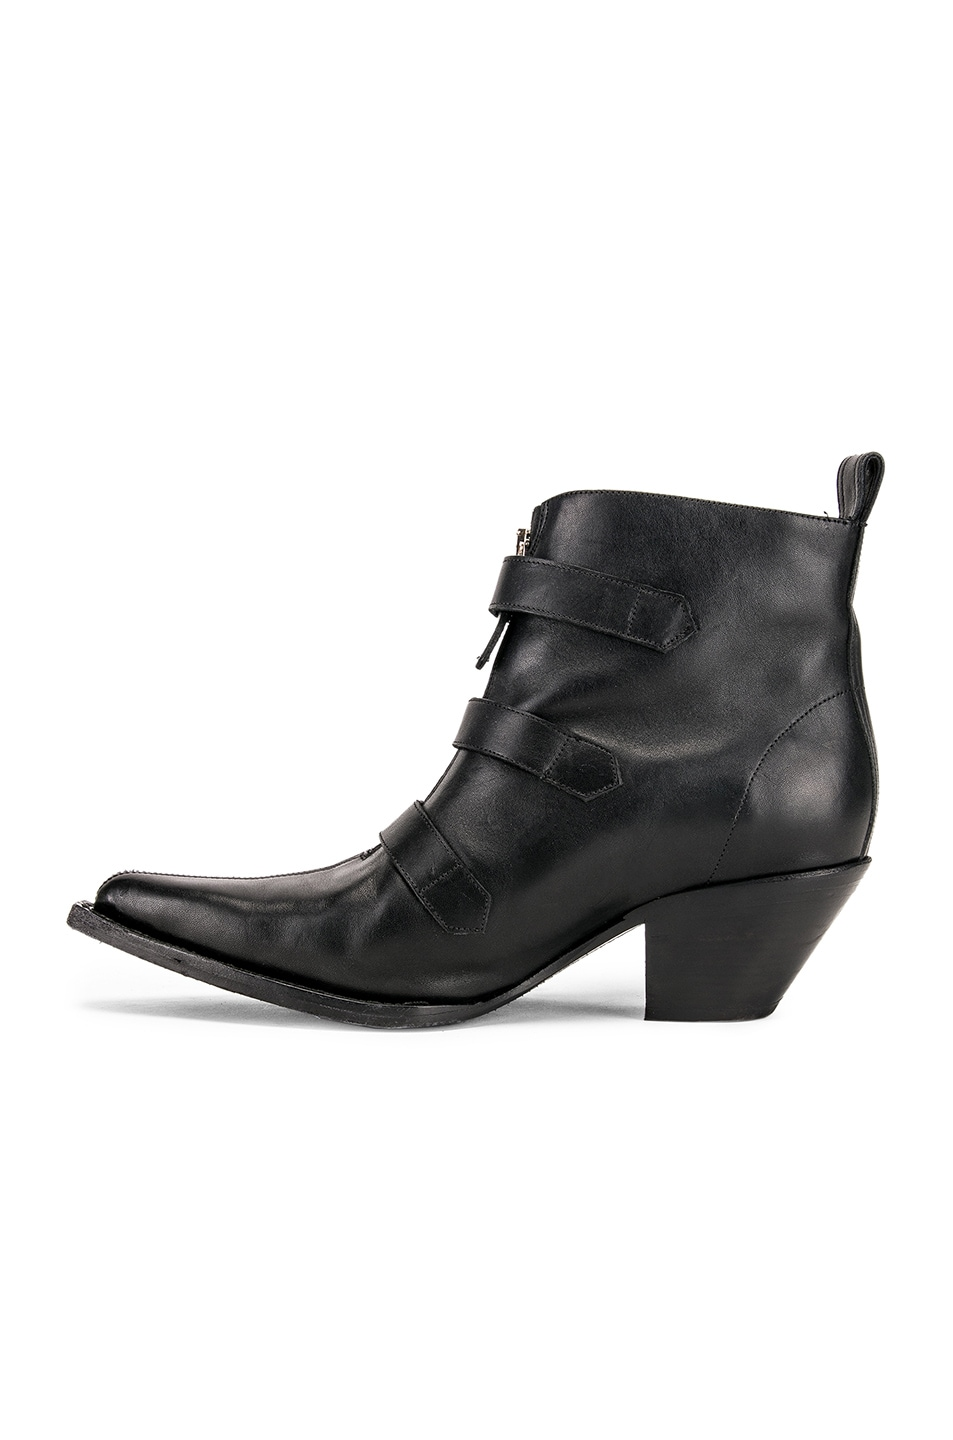 Image 5 of R13 Ankle Three Buckle Boot in Black Leather